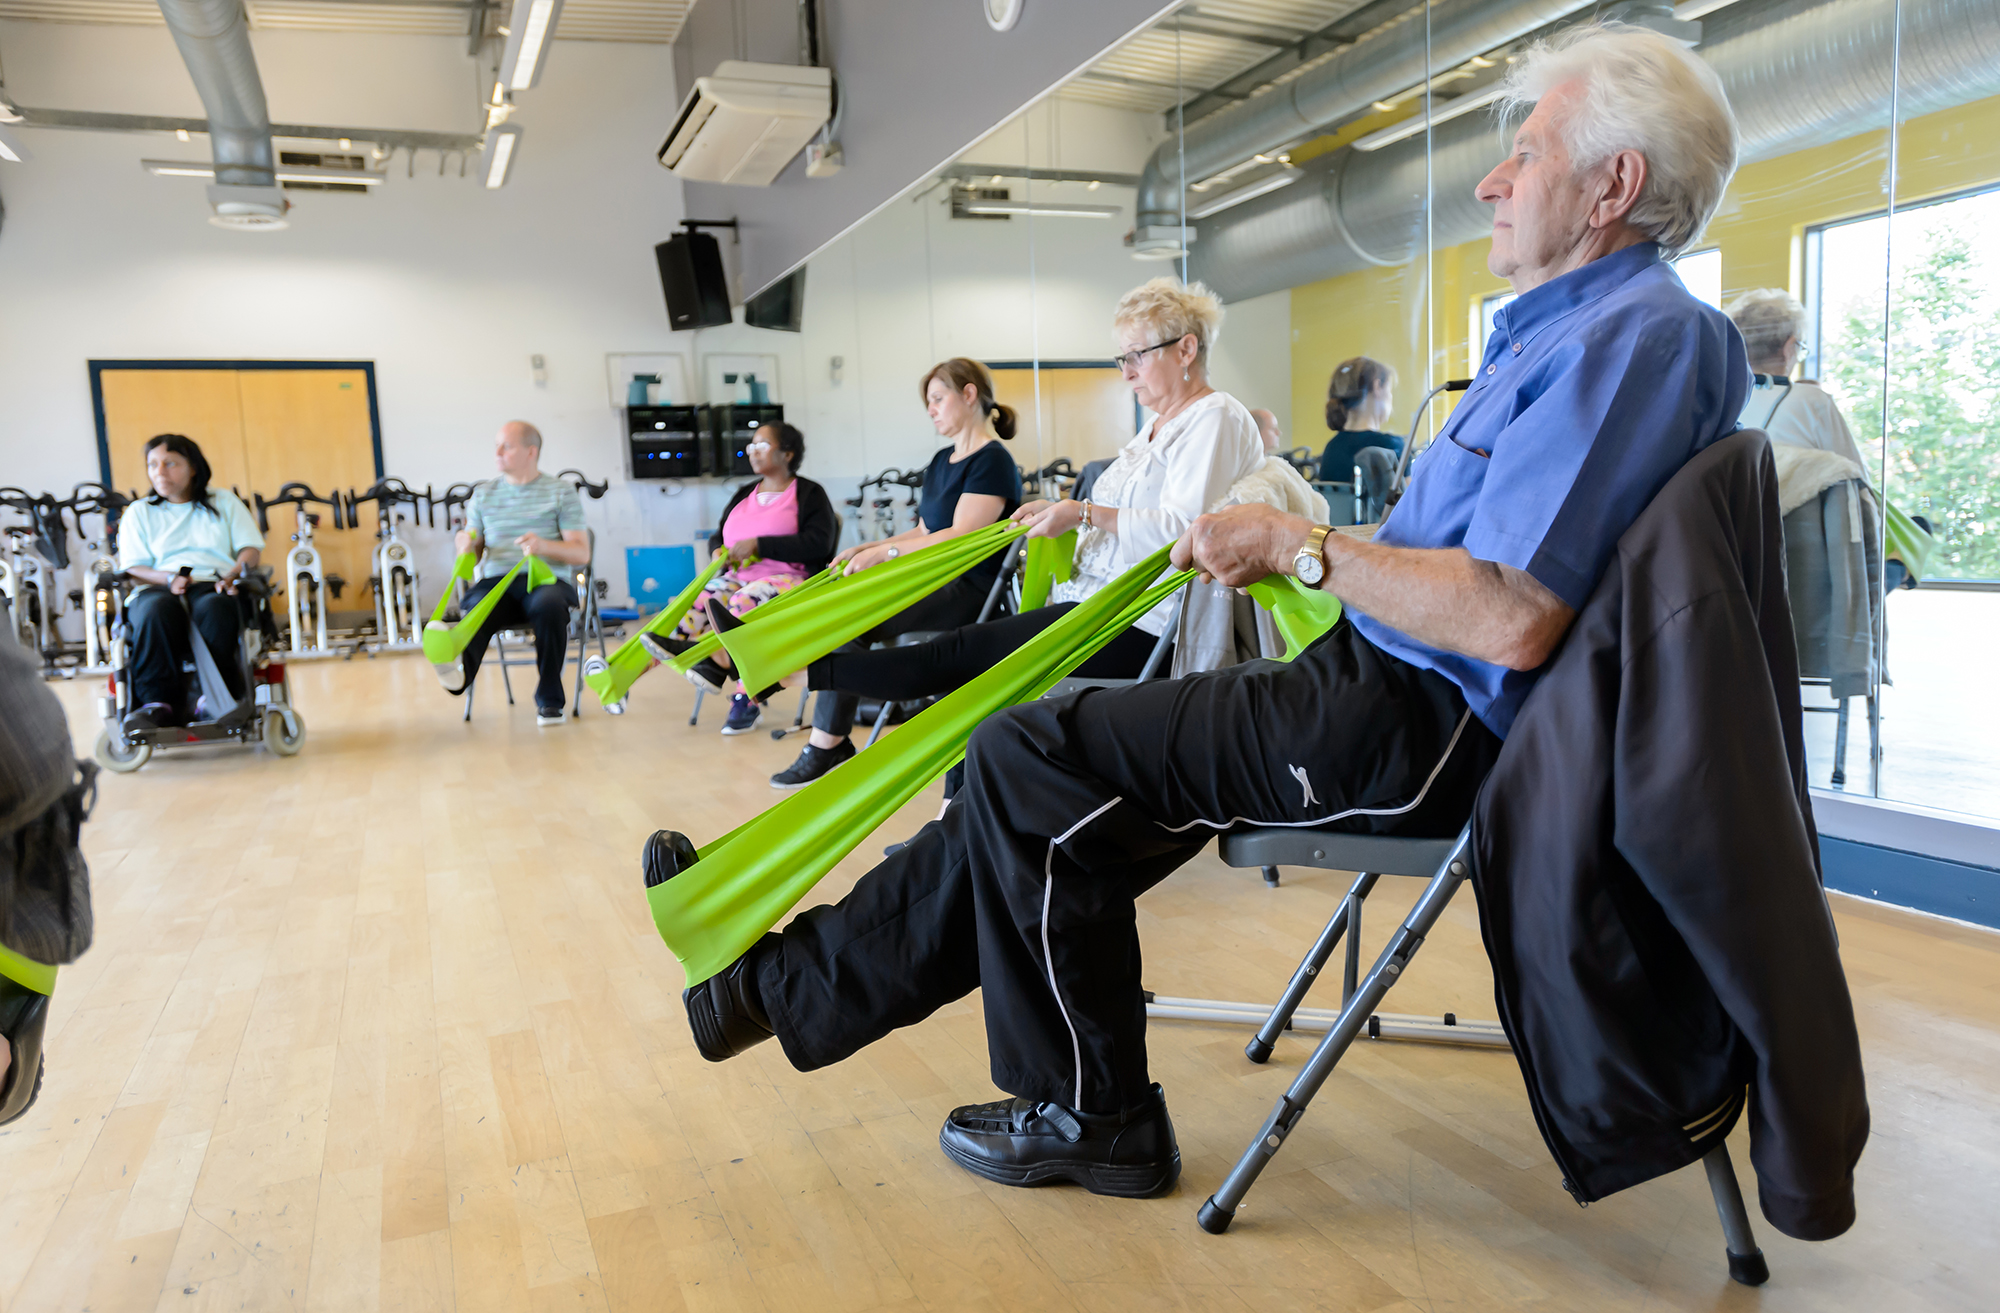 A group with MS perform seated exercise with resistance bands